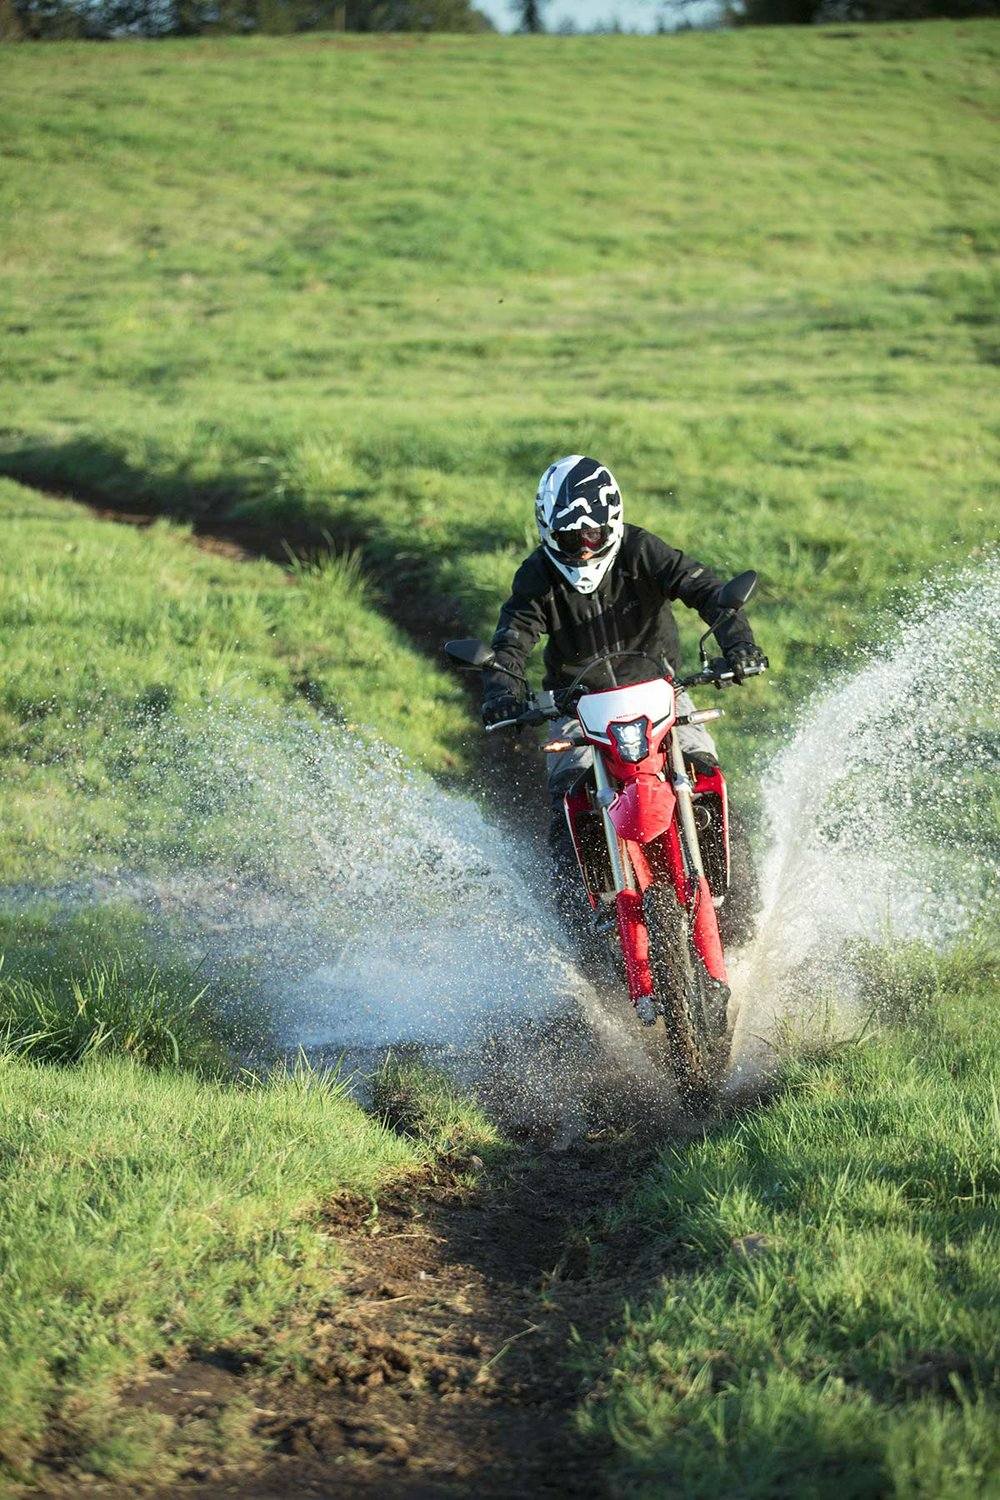 19-Honda-CRF450L_Action_2.jpg